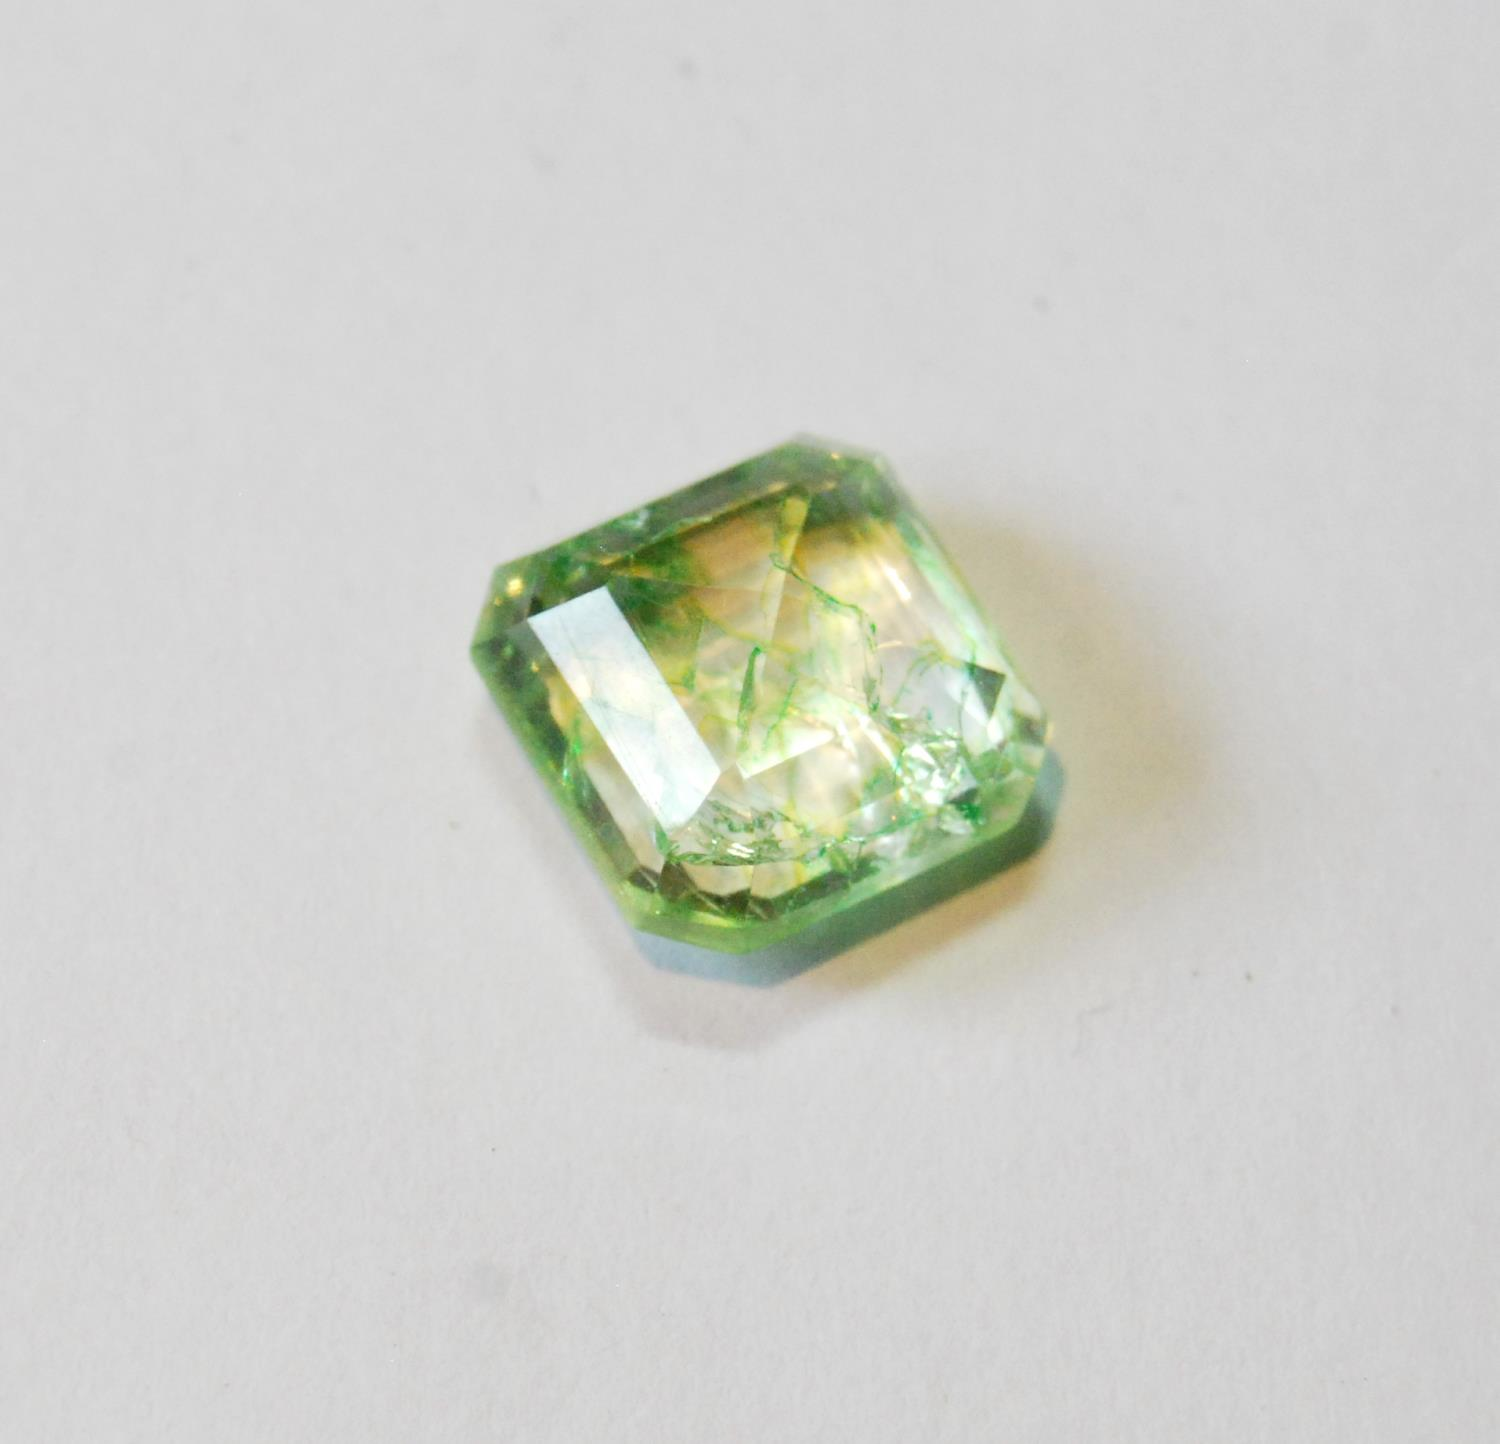 Unmounted square emerald with NGL report, given as 8.65ct, 12.24mm x 7.26mm, treated, of almost lime - Image 3 of 5